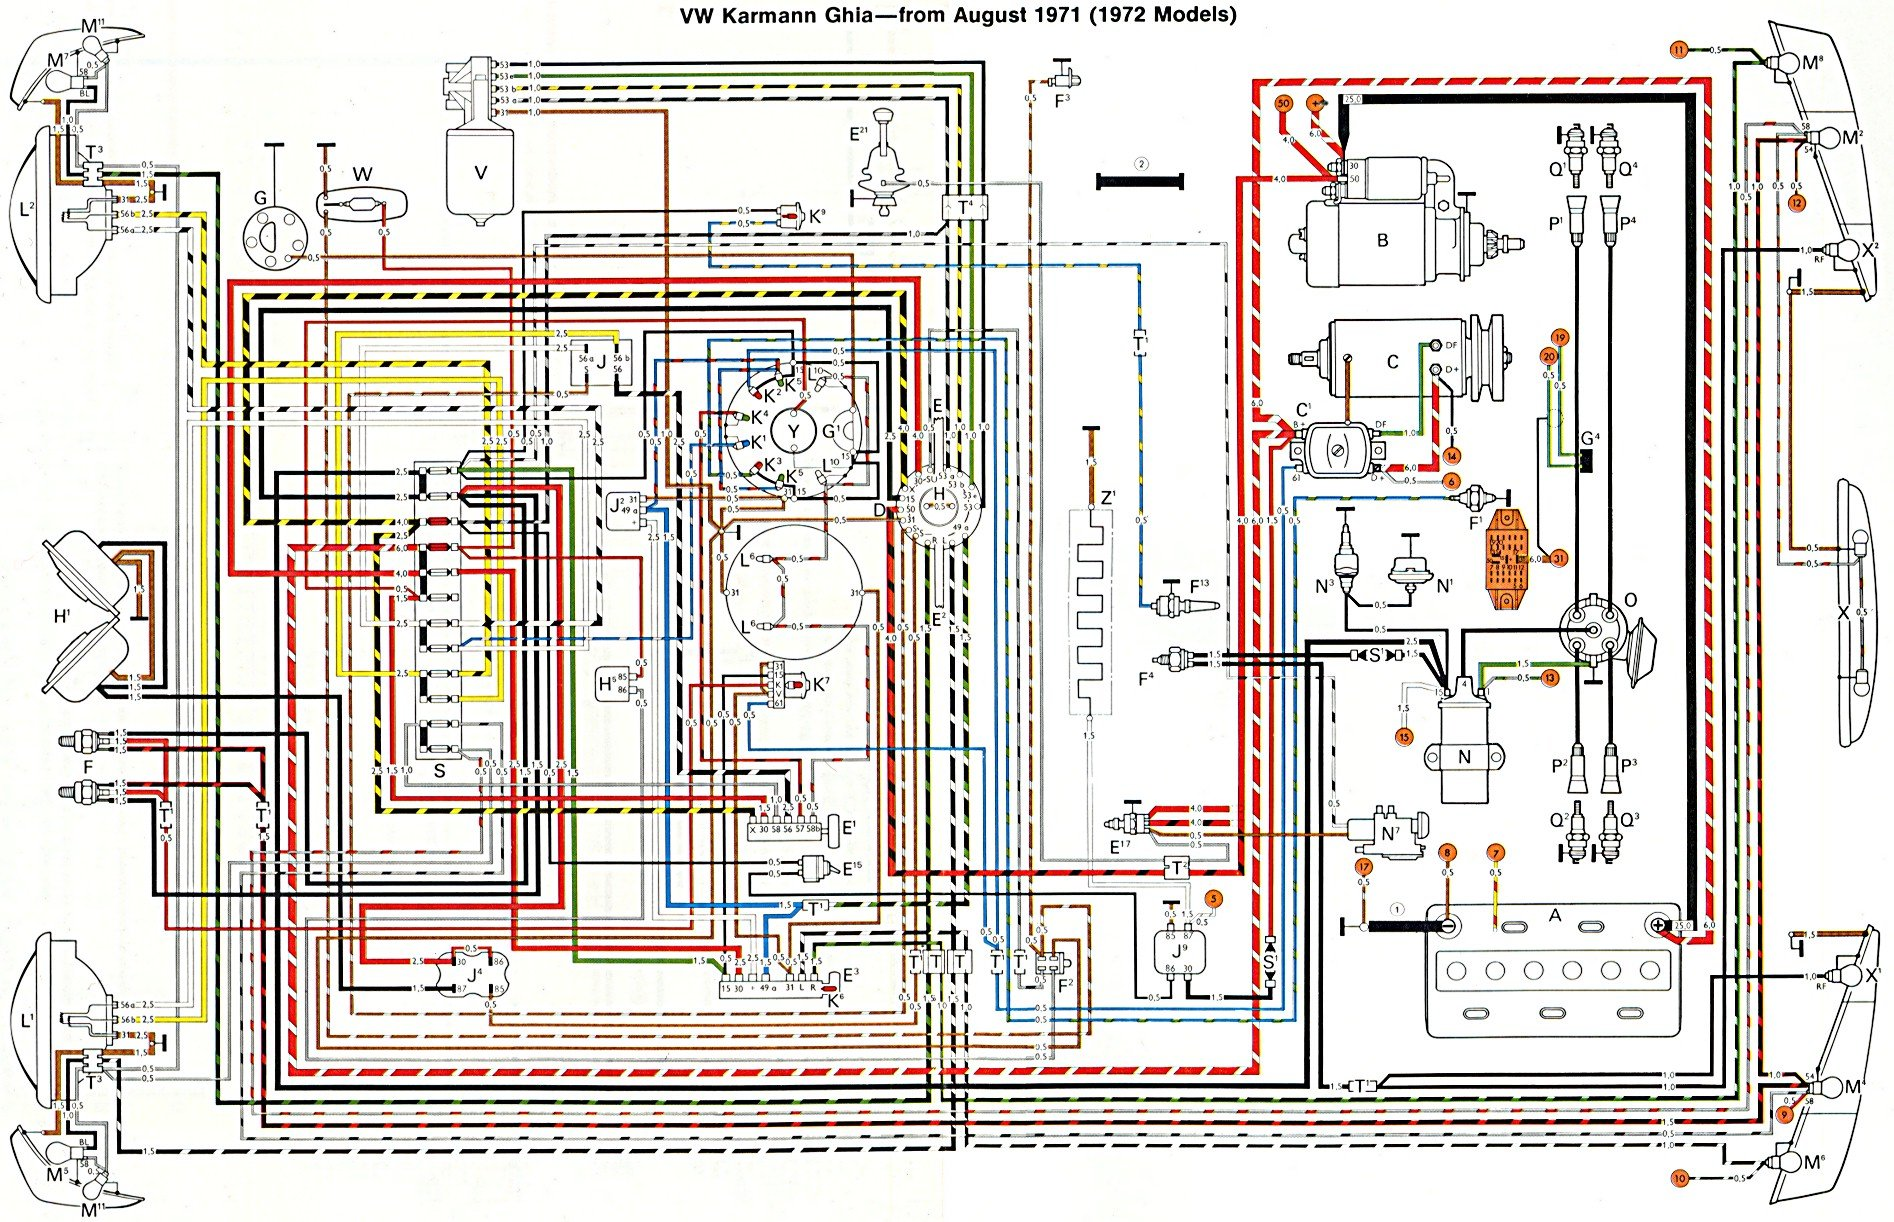 72ghia thesamba com karmann ghia wiring diagrams wire harness diagram at fashall.co